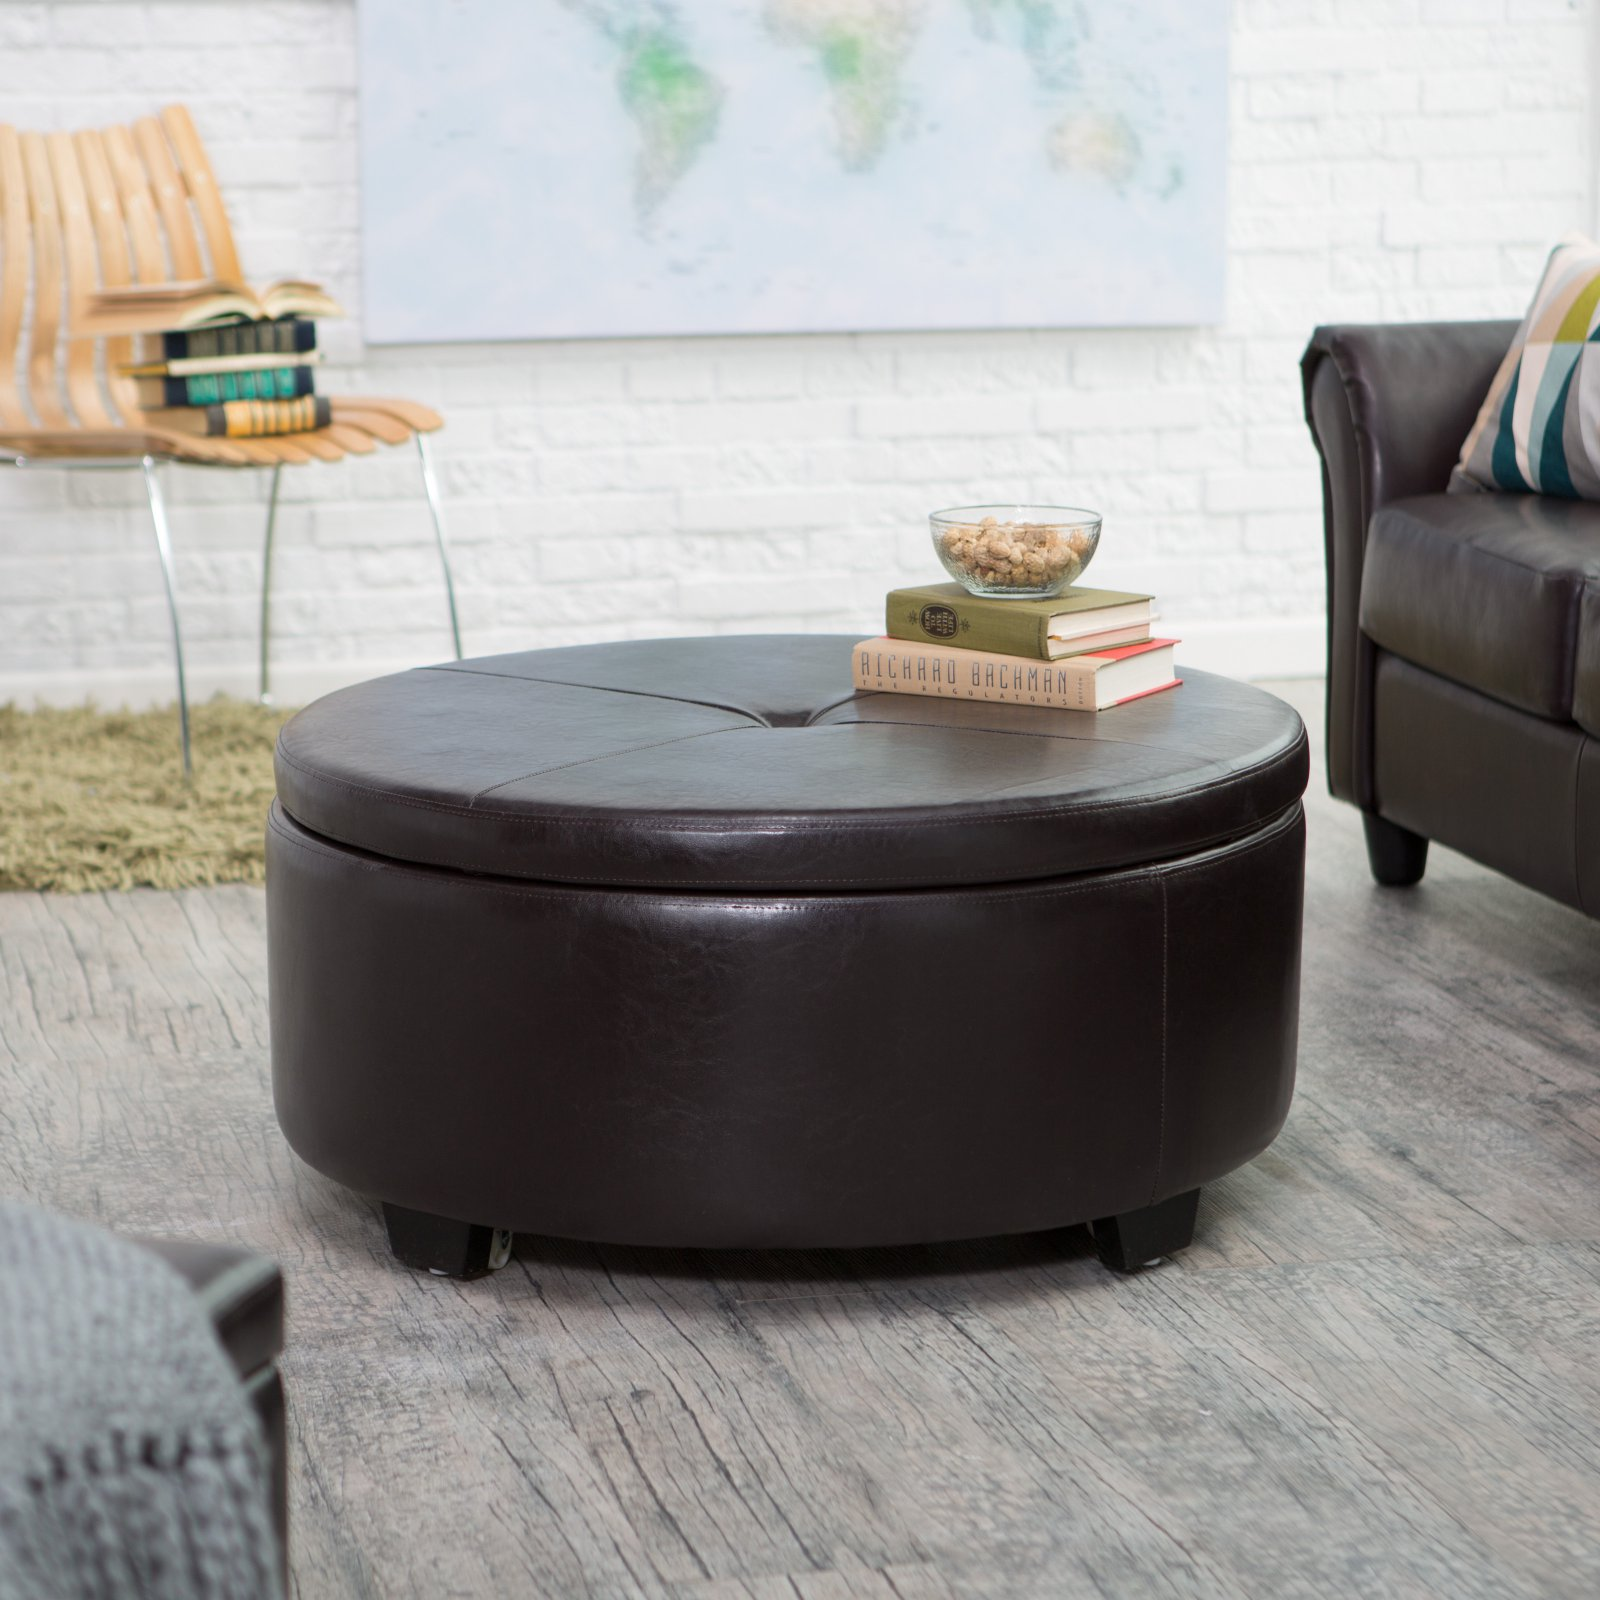 Belham Living Corbett Round Coffee Table Storage Ottoman